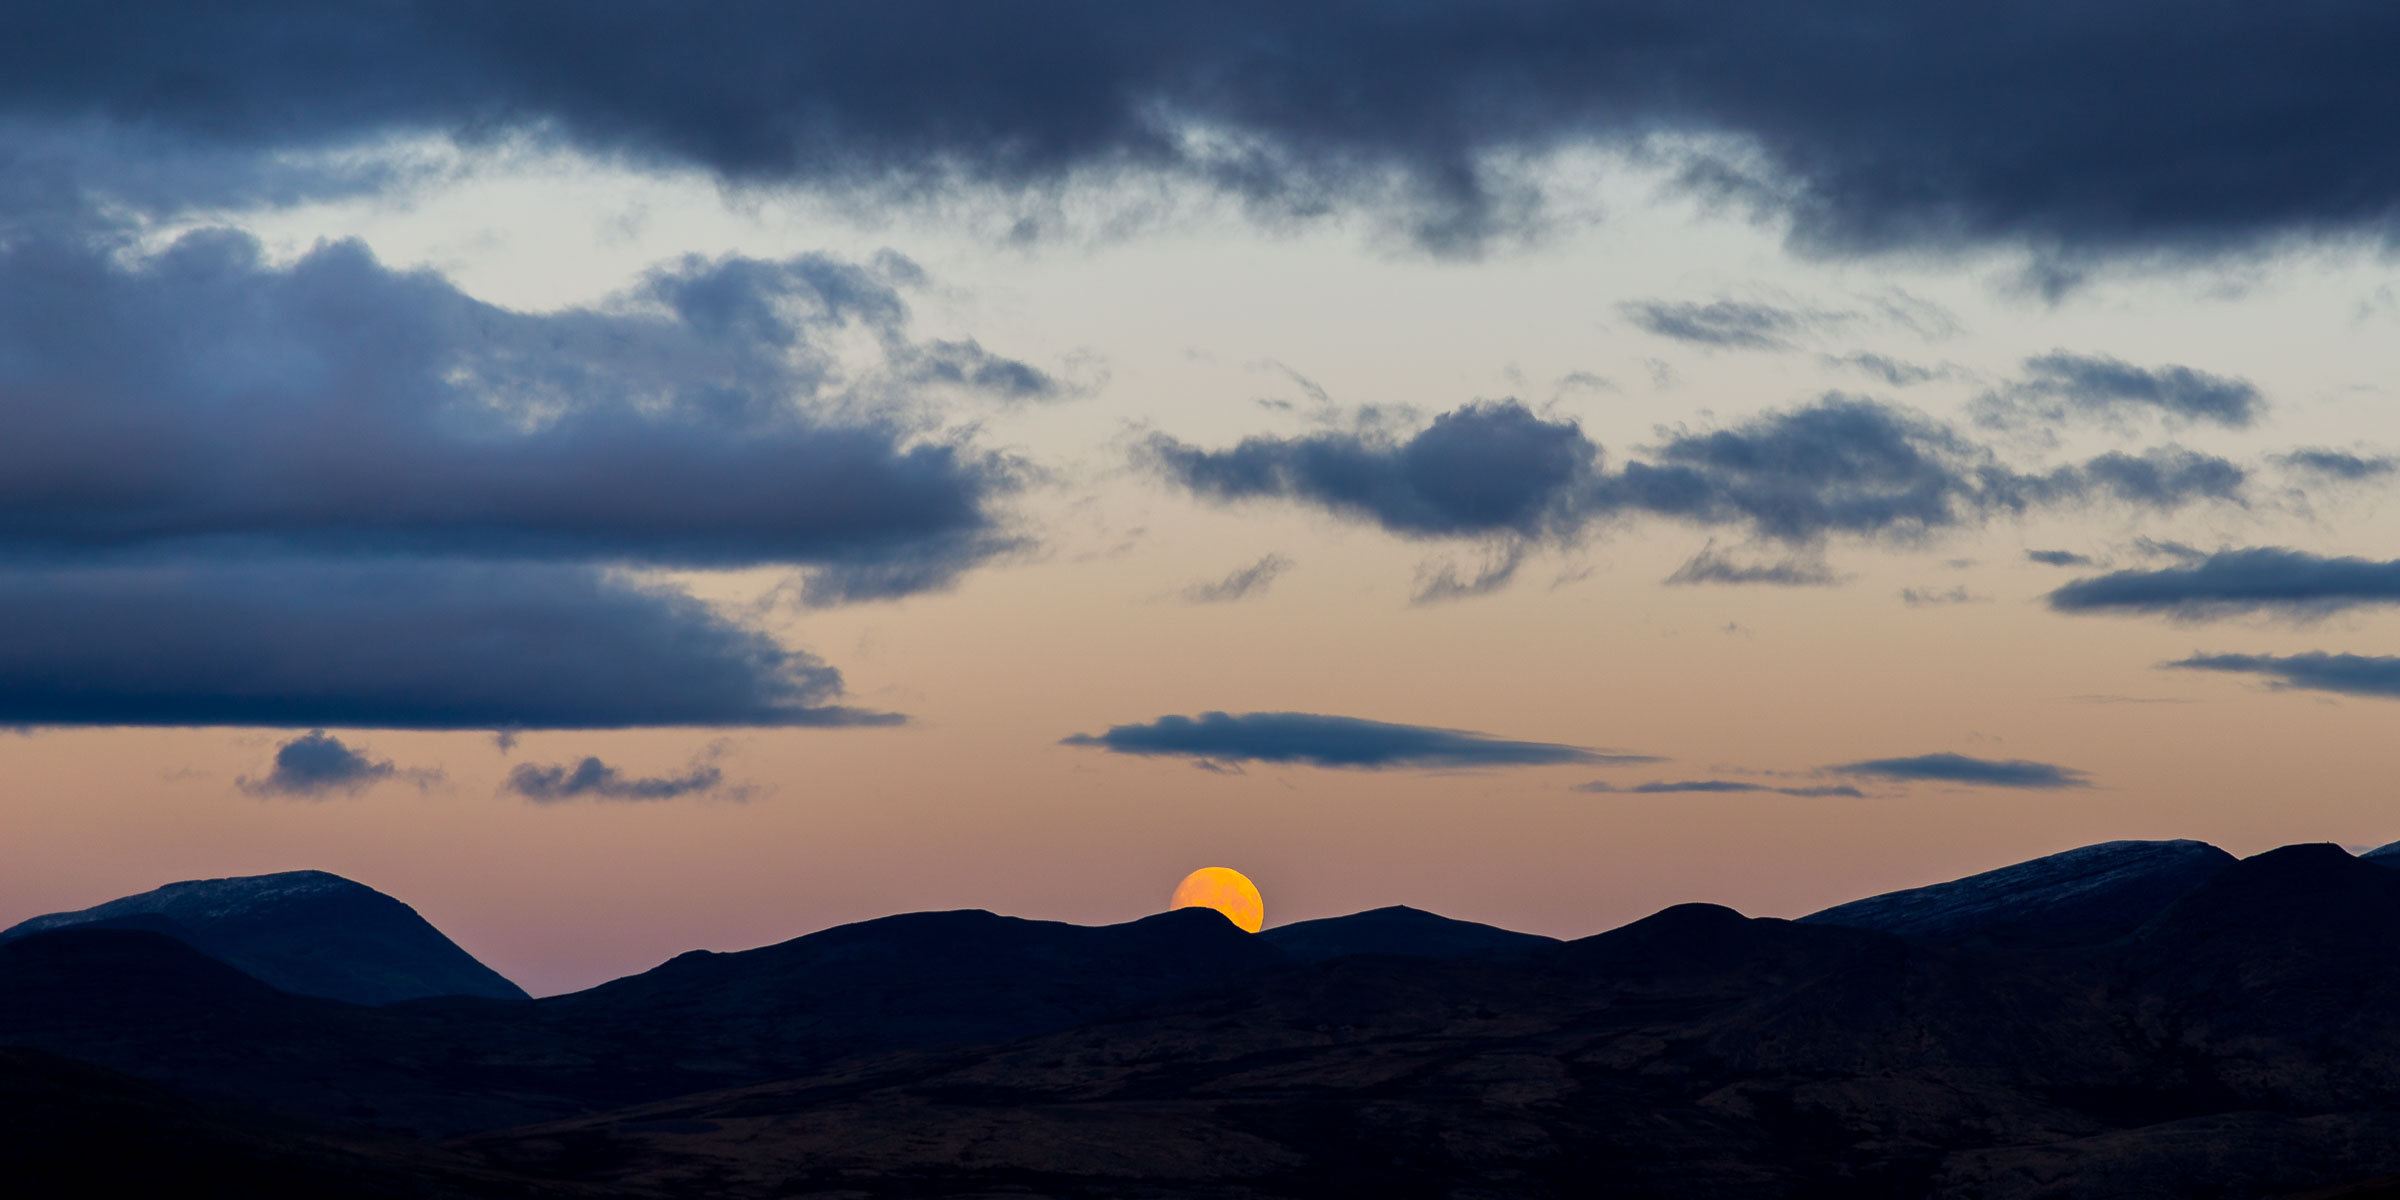 While waiting for the lunar eclipse in Rondane - 2015